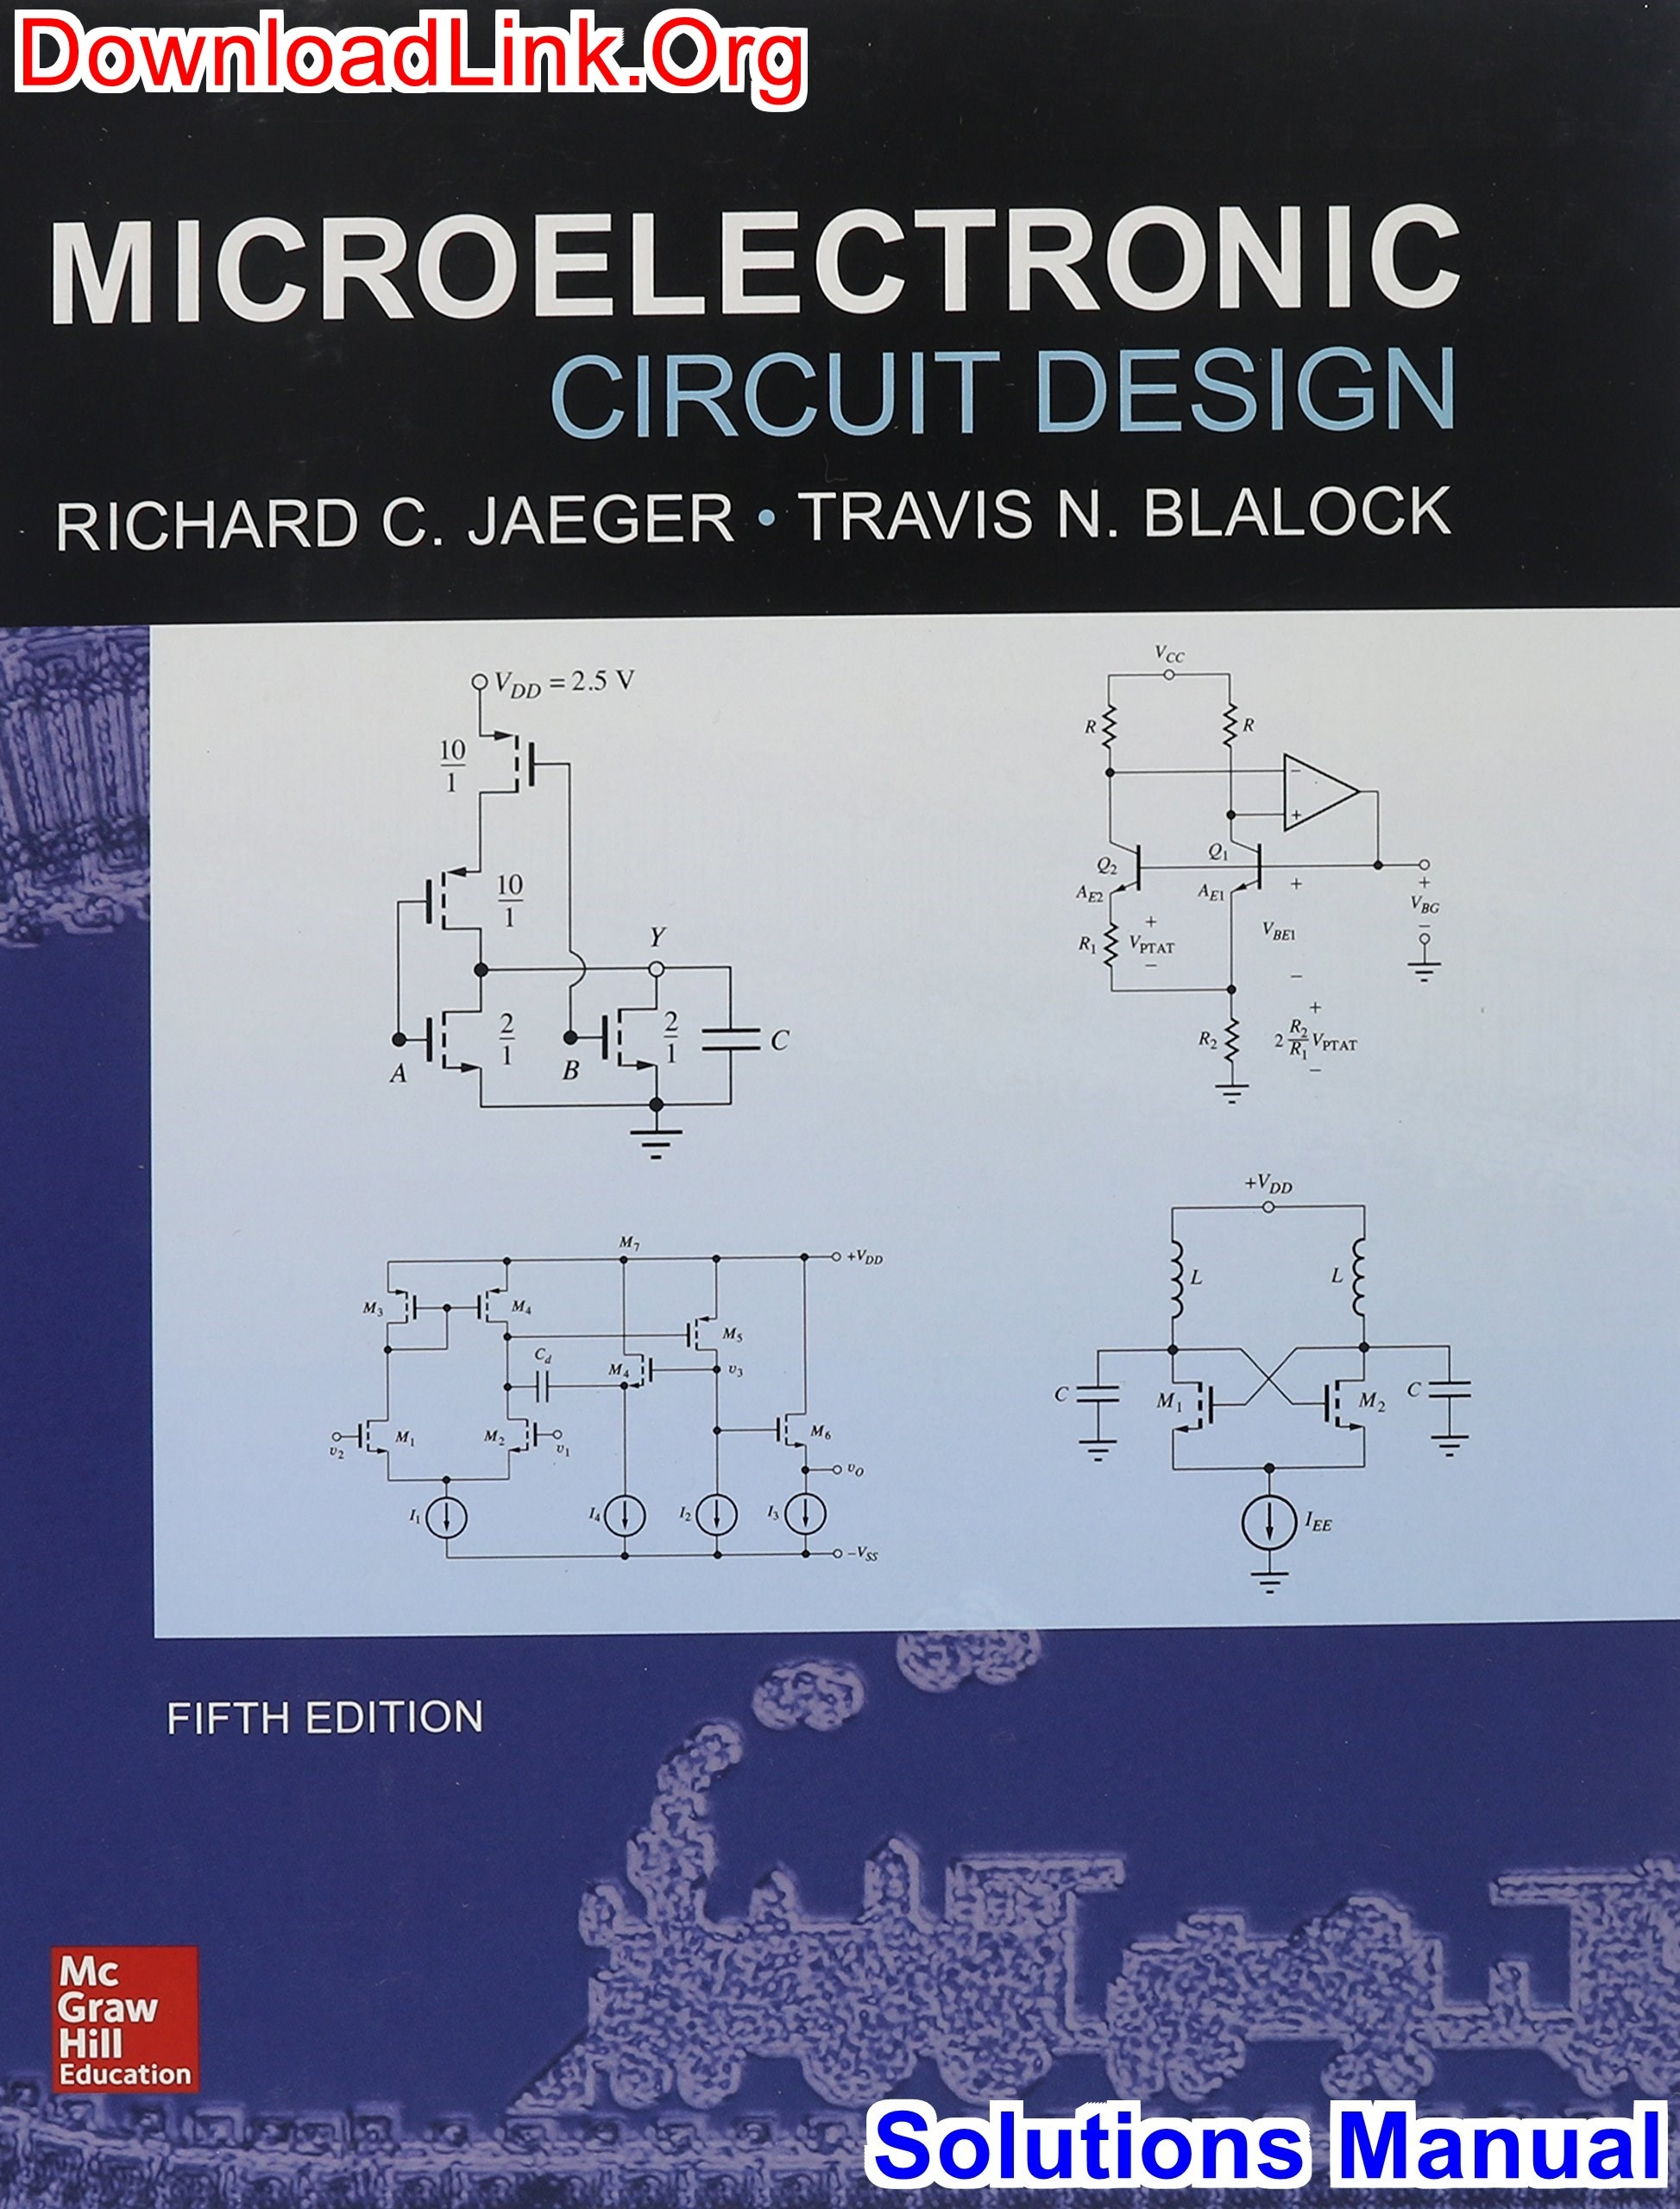 where can i download solution manual for microelectronic circuit